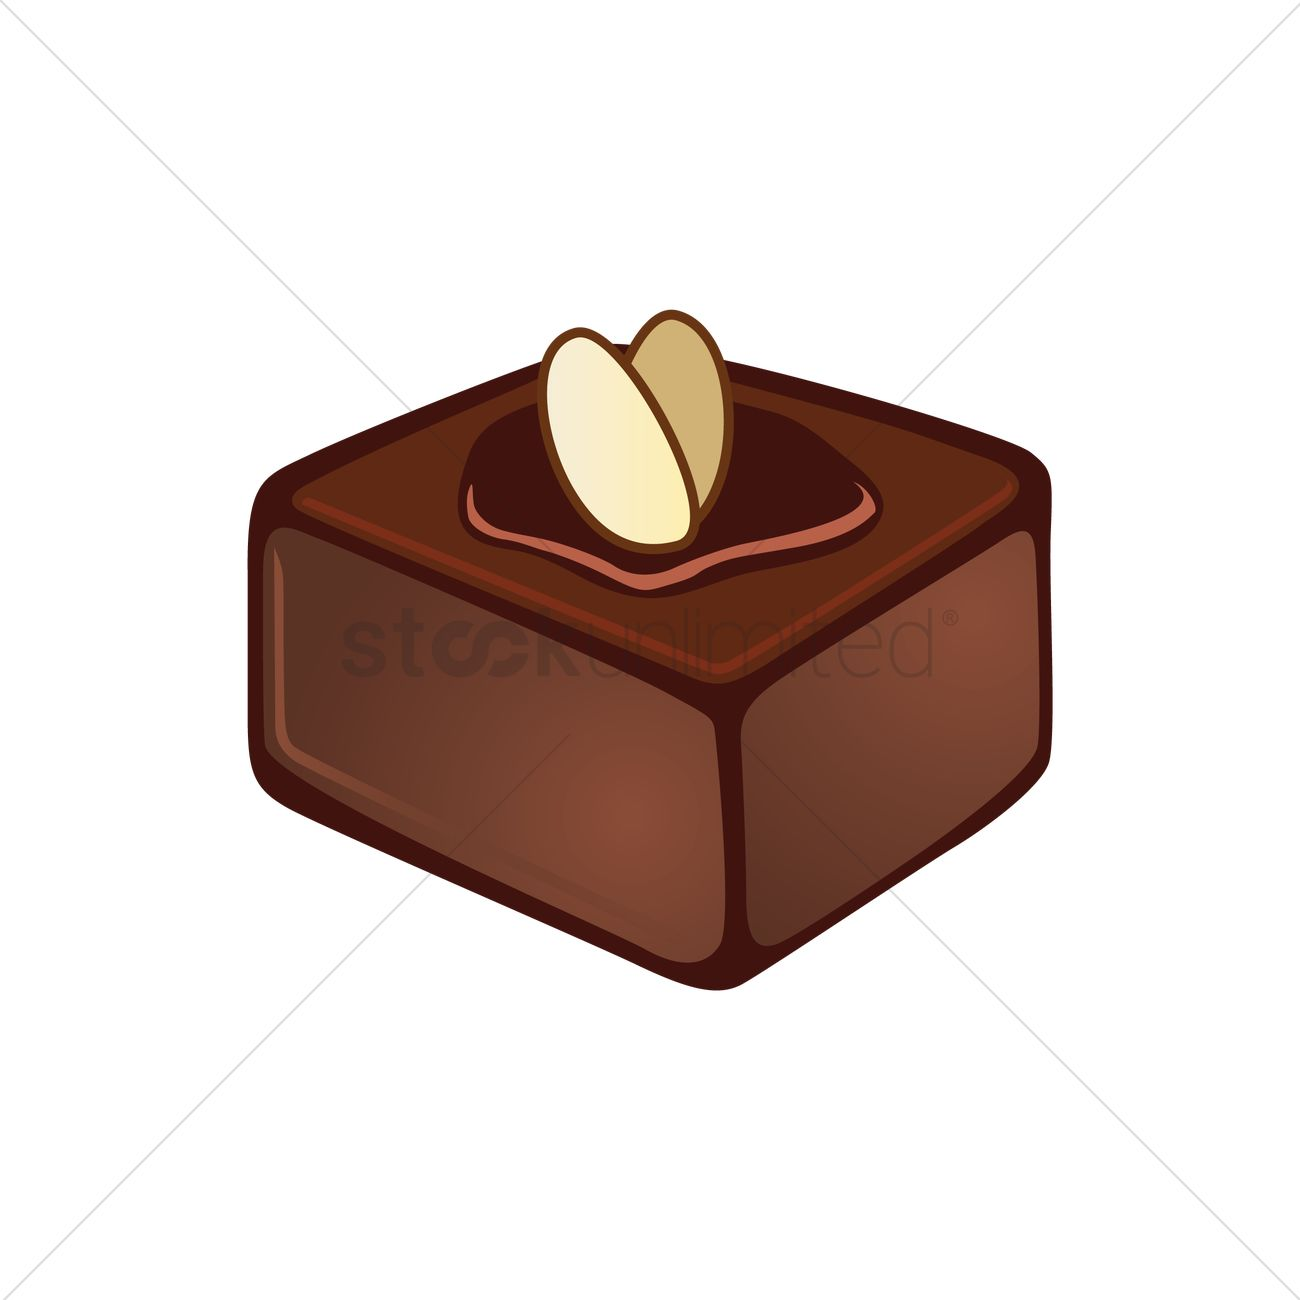 Free Chocolate fudge Vector Image.